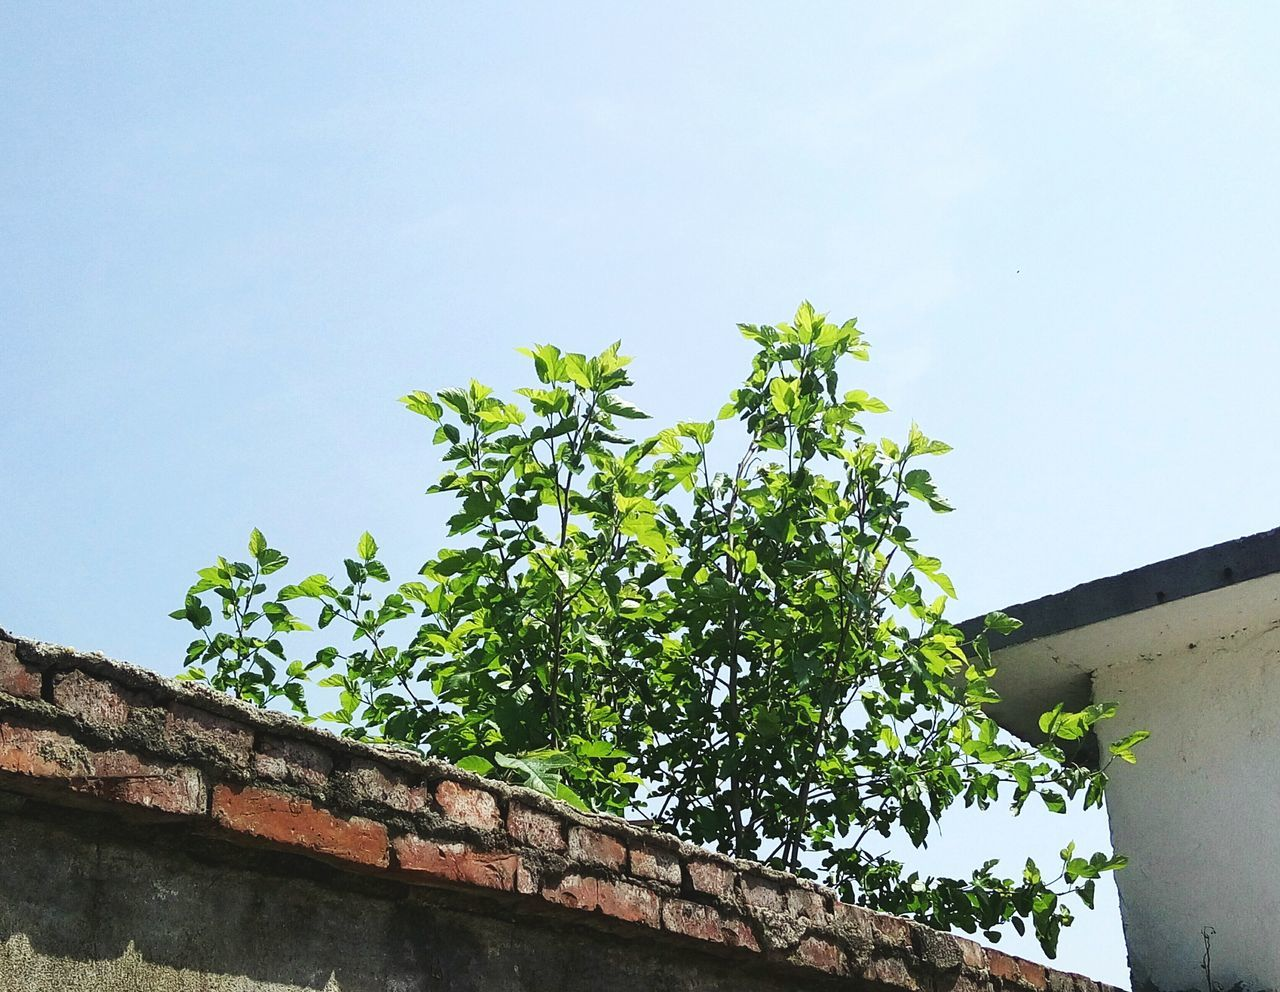 growth, low angle view, no people, day, plant, outdoors, nature, architecture, clear sky, green color, tree, built structure, building exterior, sky, freshness, close-up